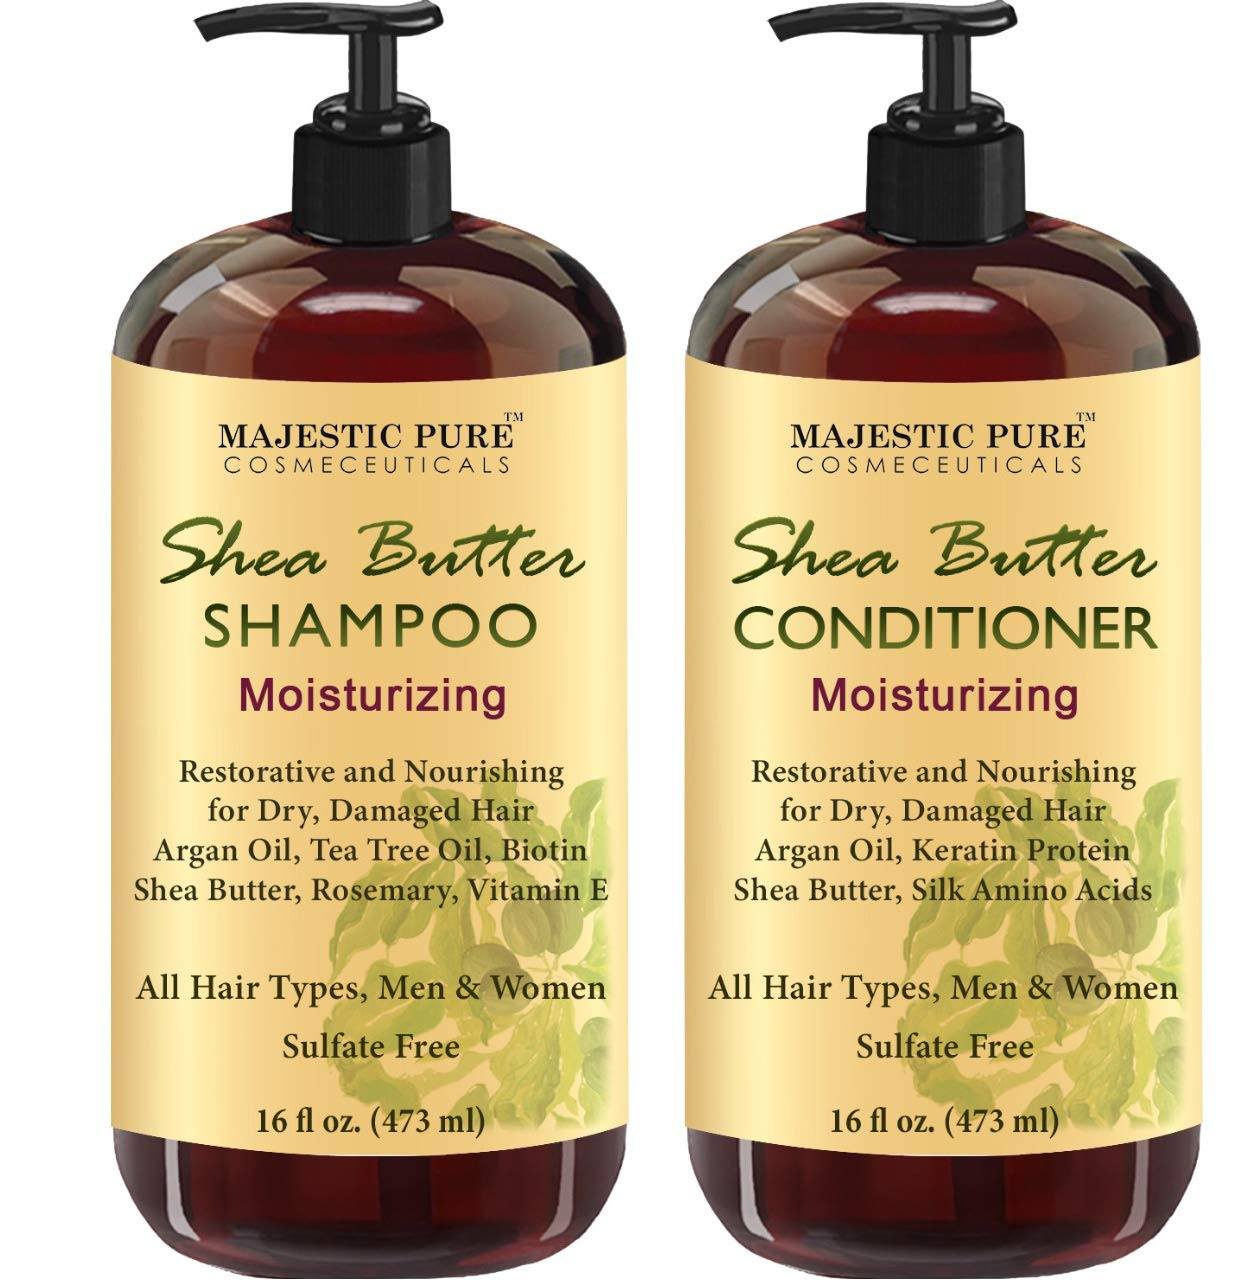 MAJESTIC PURE Shea Butter Shampoo and Conditioner Set, Moisturizing & Nourishing - Daily Shampoo Set for Men and Women - Sulfate Free & Paraben Free, 16 fl oz each by Majestic Pure